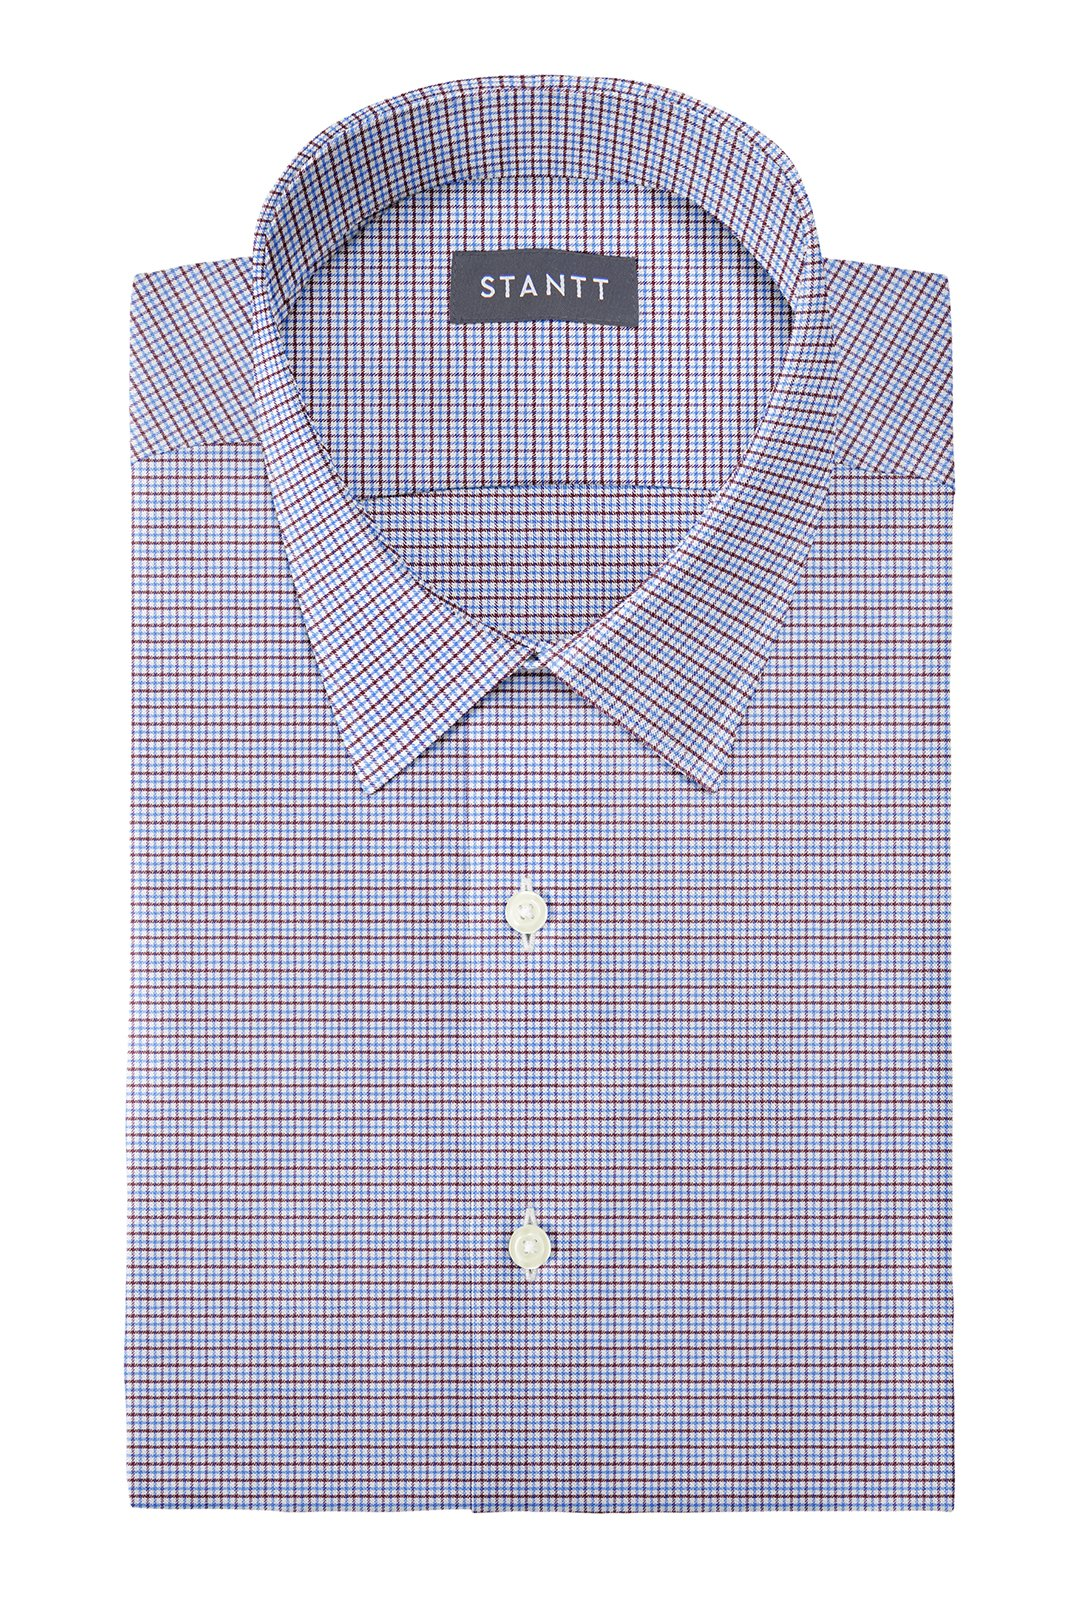 Performance Blue and Brown Mini Tattersall: Semi-Spread Collar, French Cuff